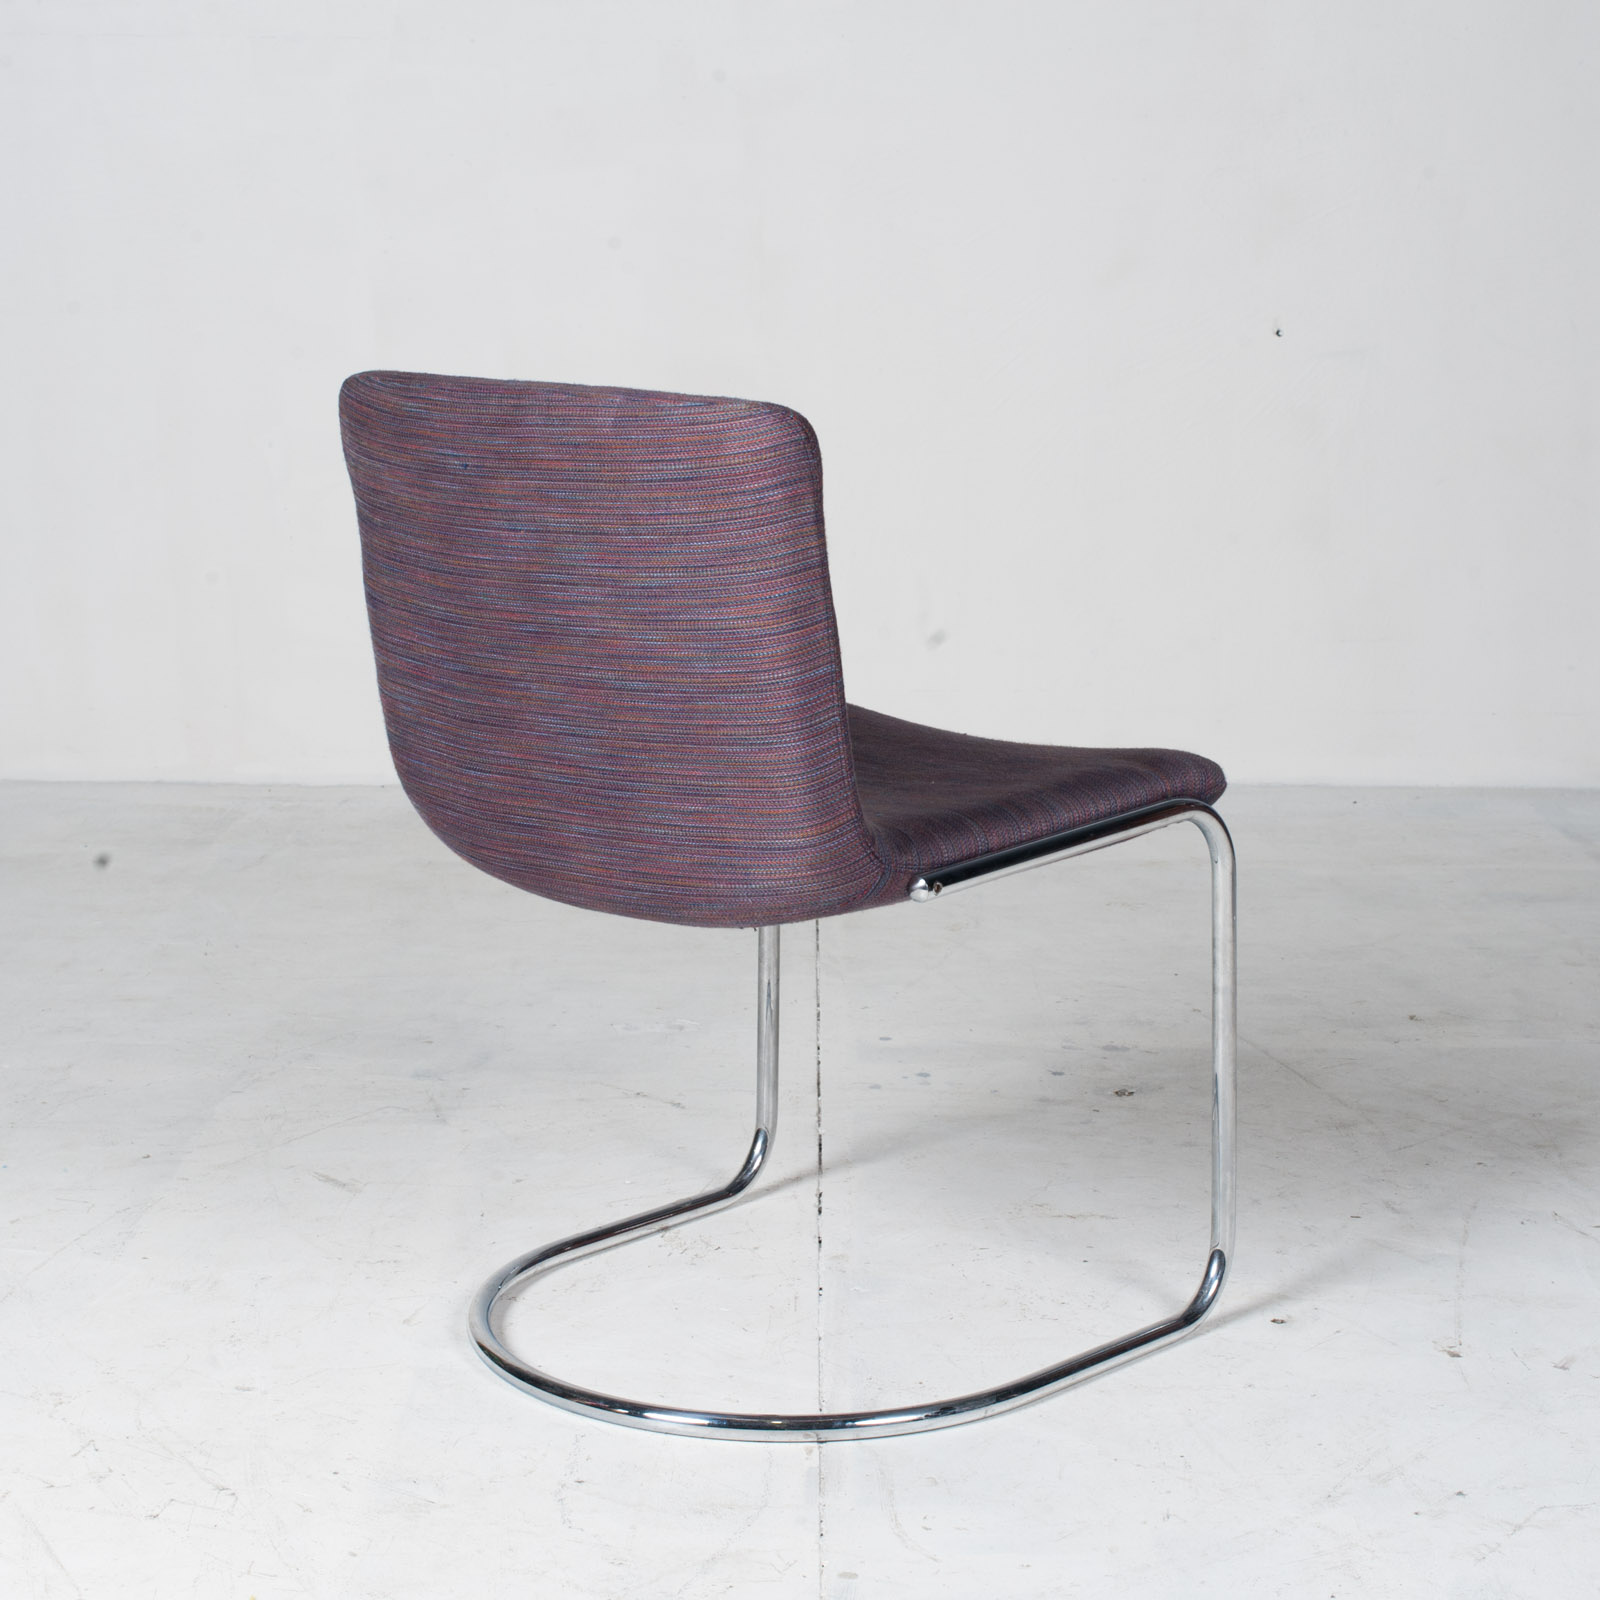 Set Of 6 Model 'lens' Dining Chairs By Giovanni Offredi For Saporiti In Chrome And Original Upholstery 1960s Italy 11